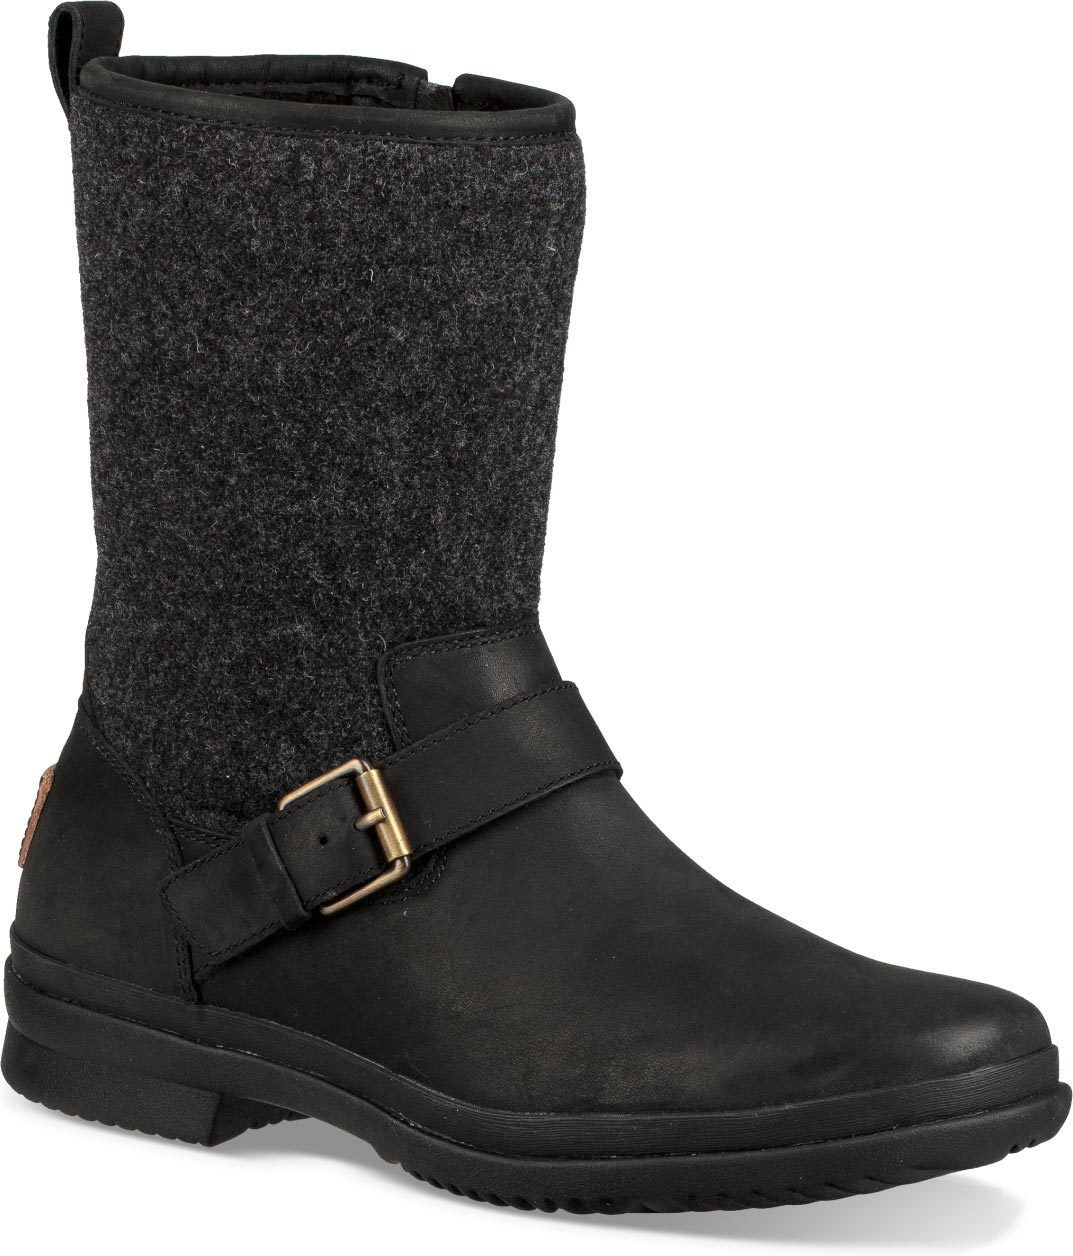 2eab2f8cae5 Tackle the elements in the UGG Women's Robbie, a waterproof boot ...